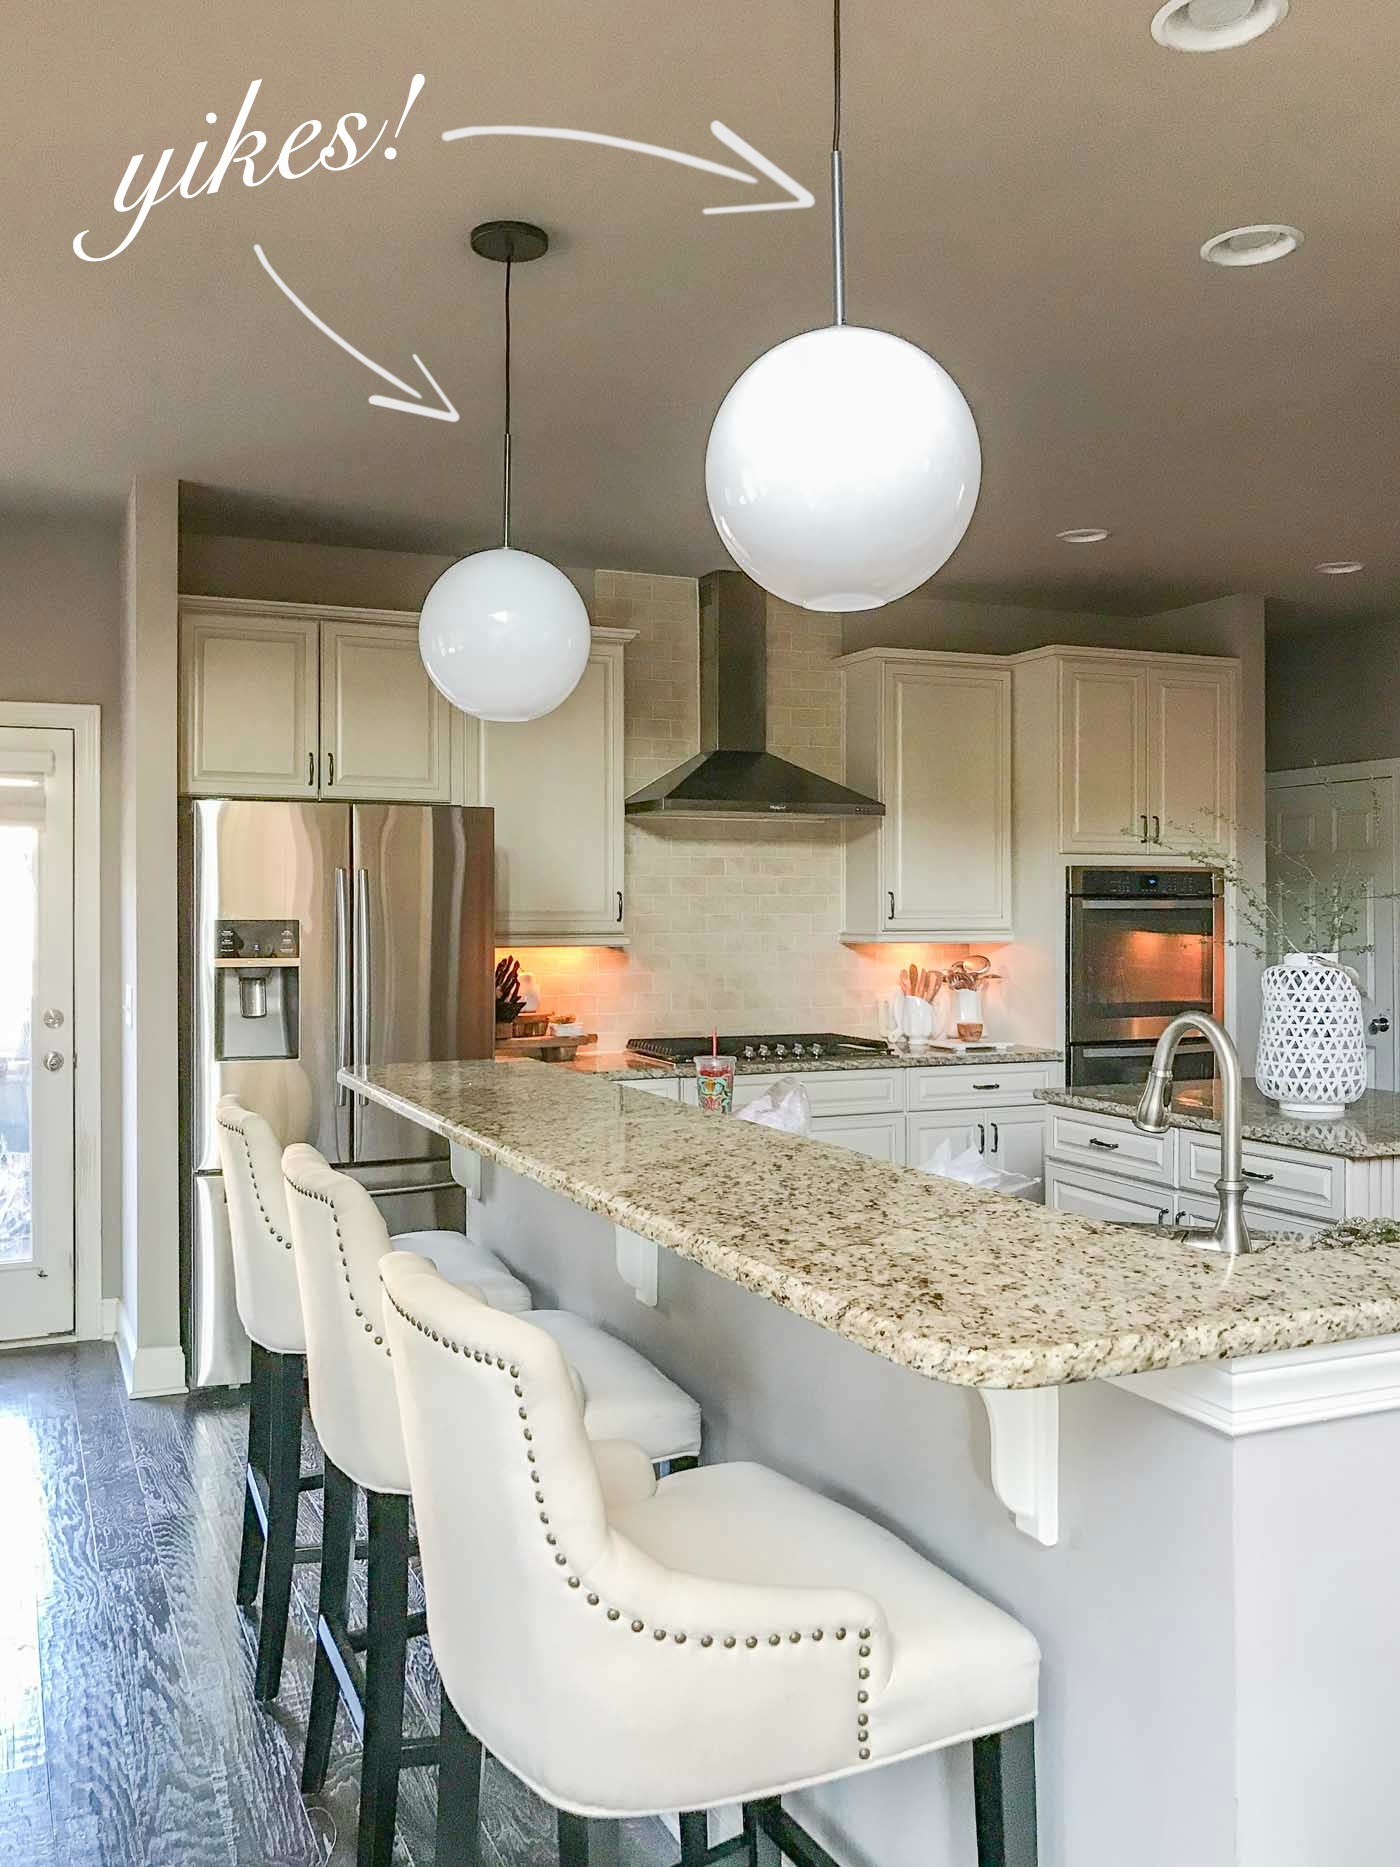 West Elm Milk Glass Pendants in Kitchen